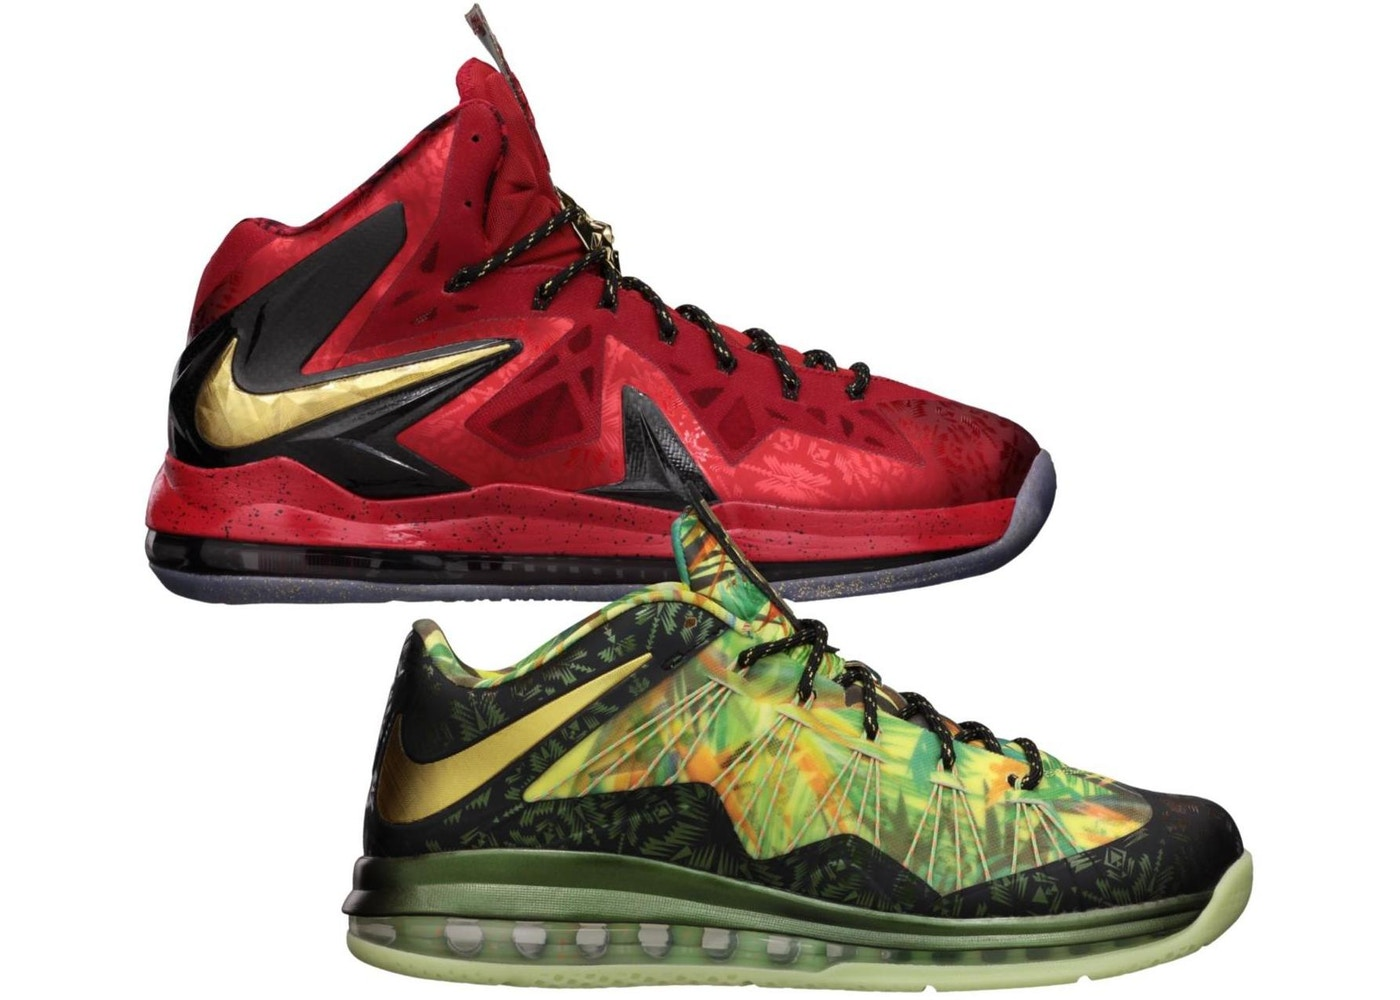 fe721fd95e4 Nike LeBron 10 Shoes - Price Premium